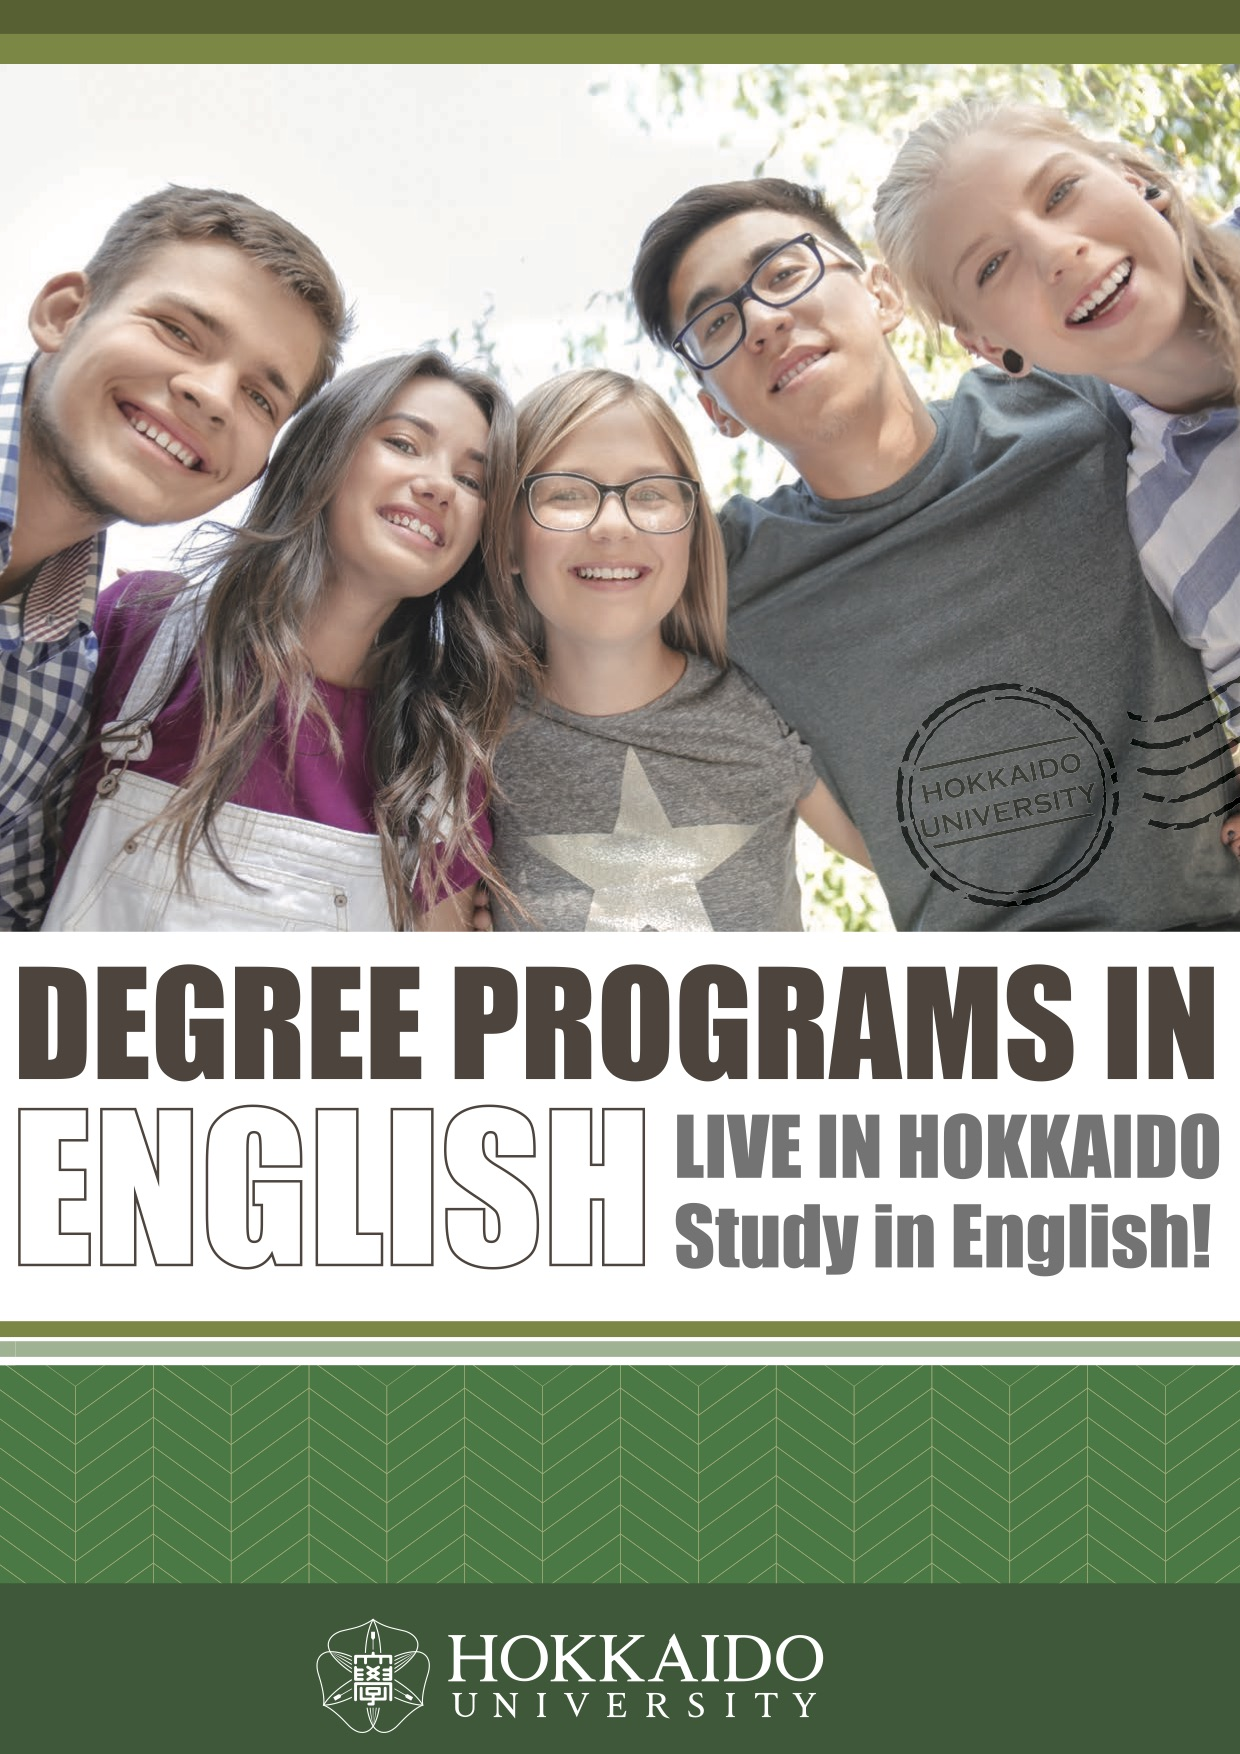 Degree Programs in English 2018